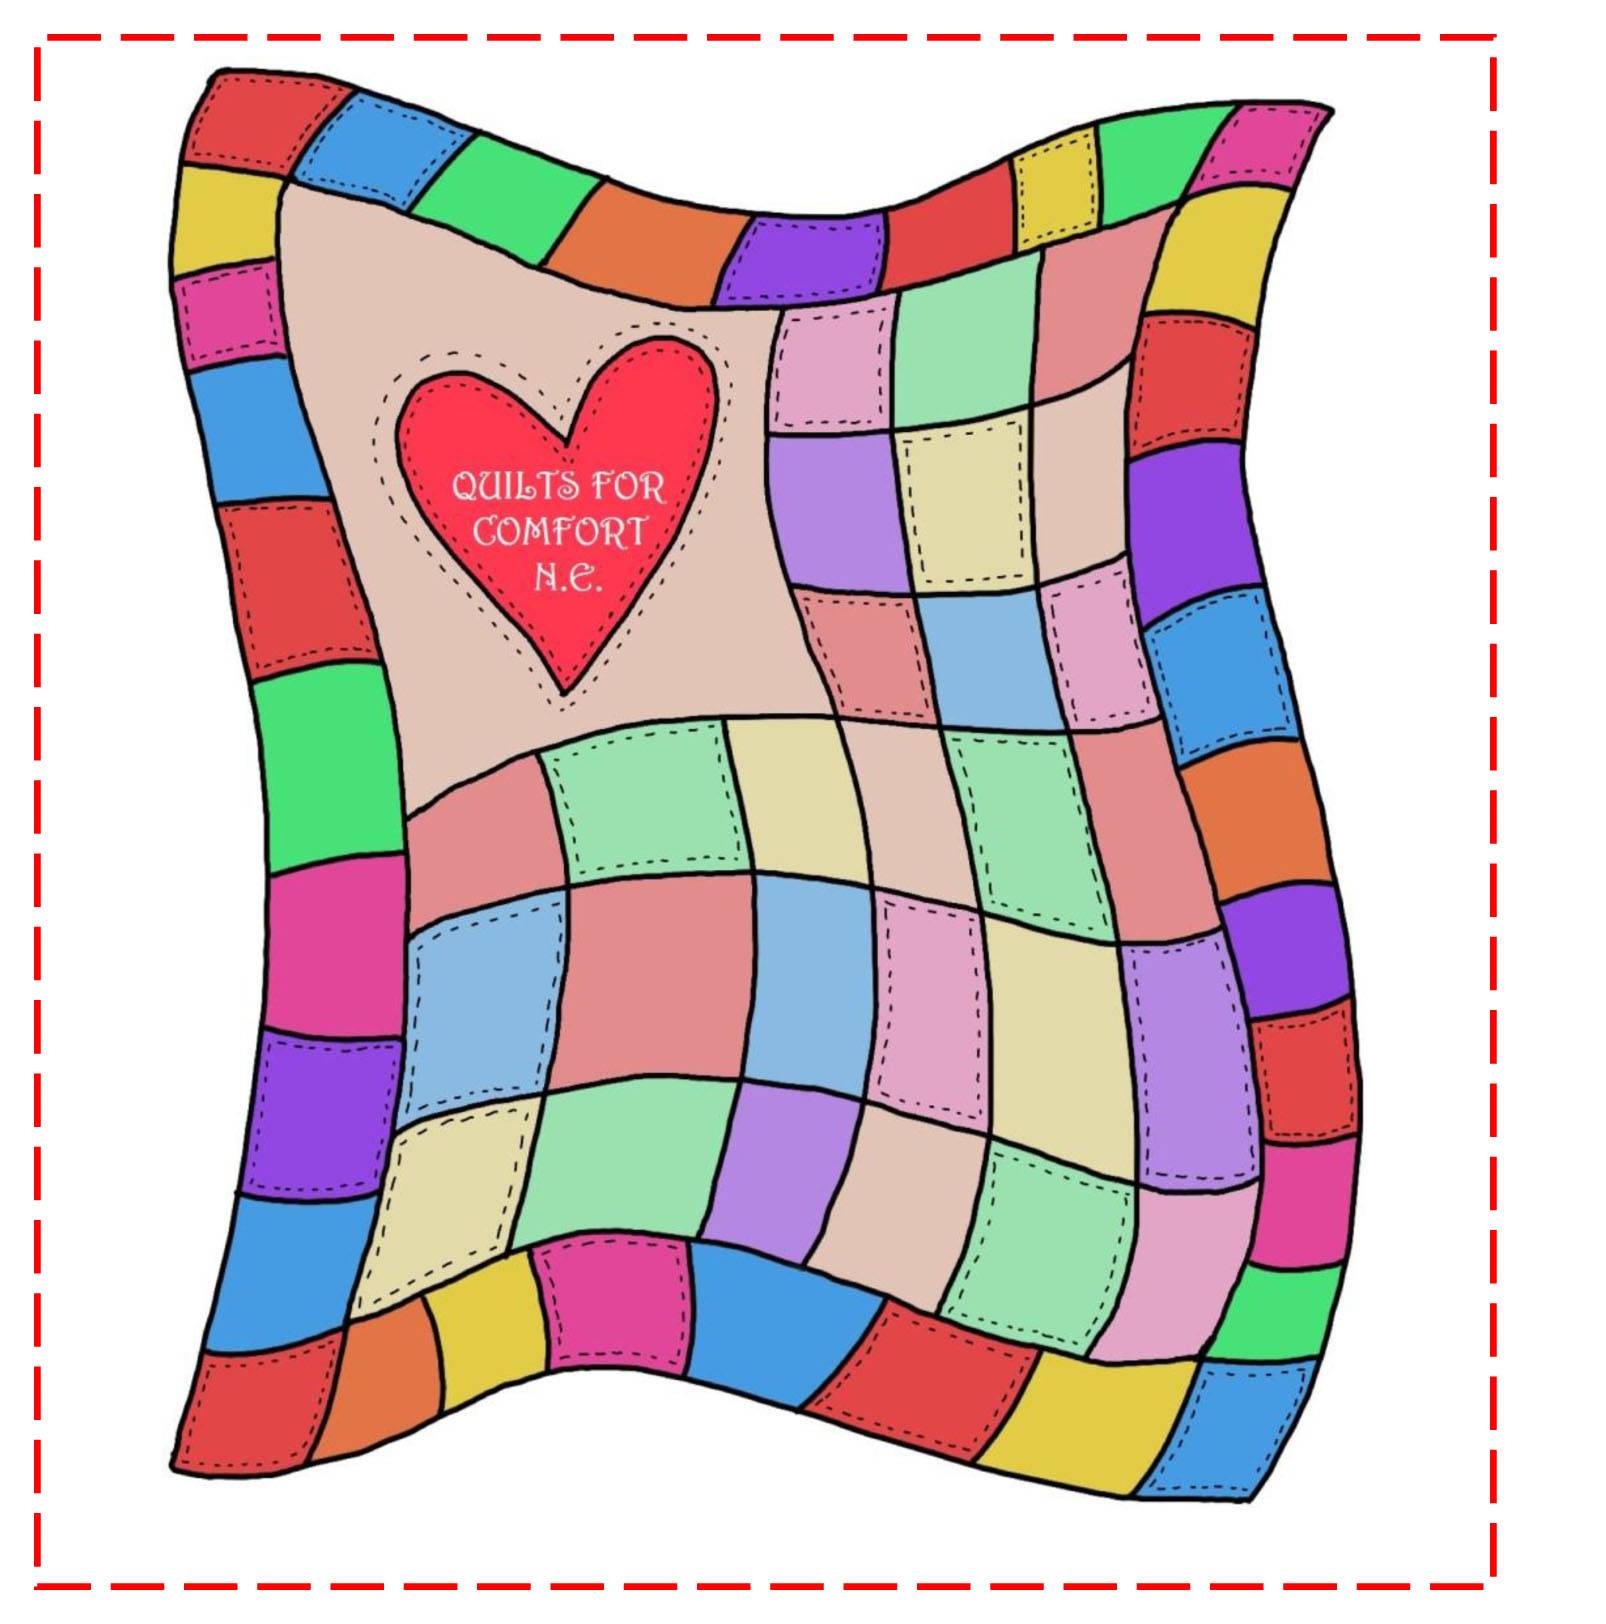 Needless clipart quilting Comfort QUILTS NORTHEAST for Clipart